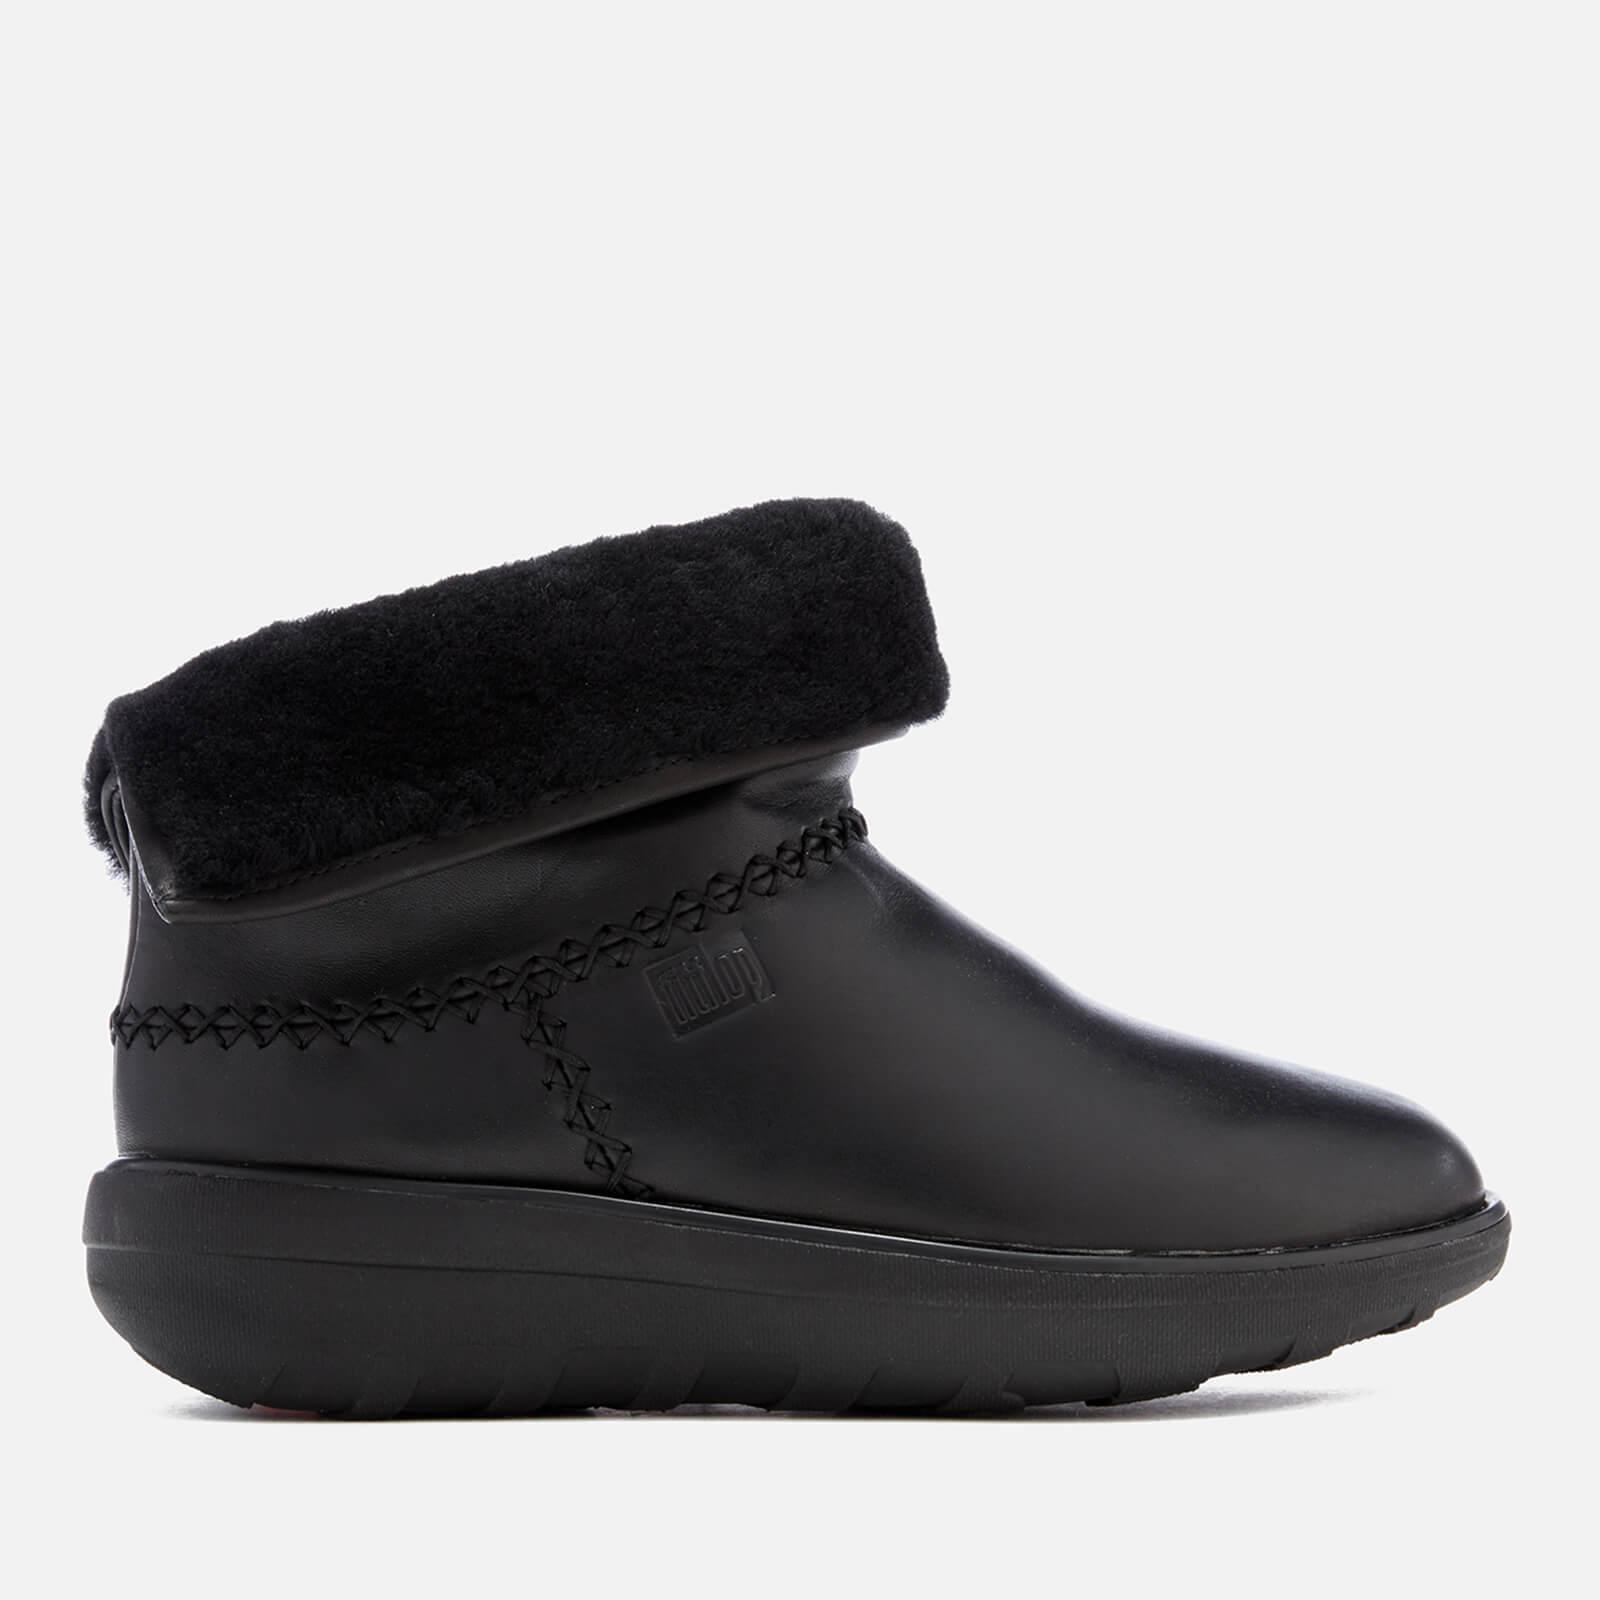 9248b04453890e Fitflop Mukluk Leather Shorty 2 Boots in Black - Lyst